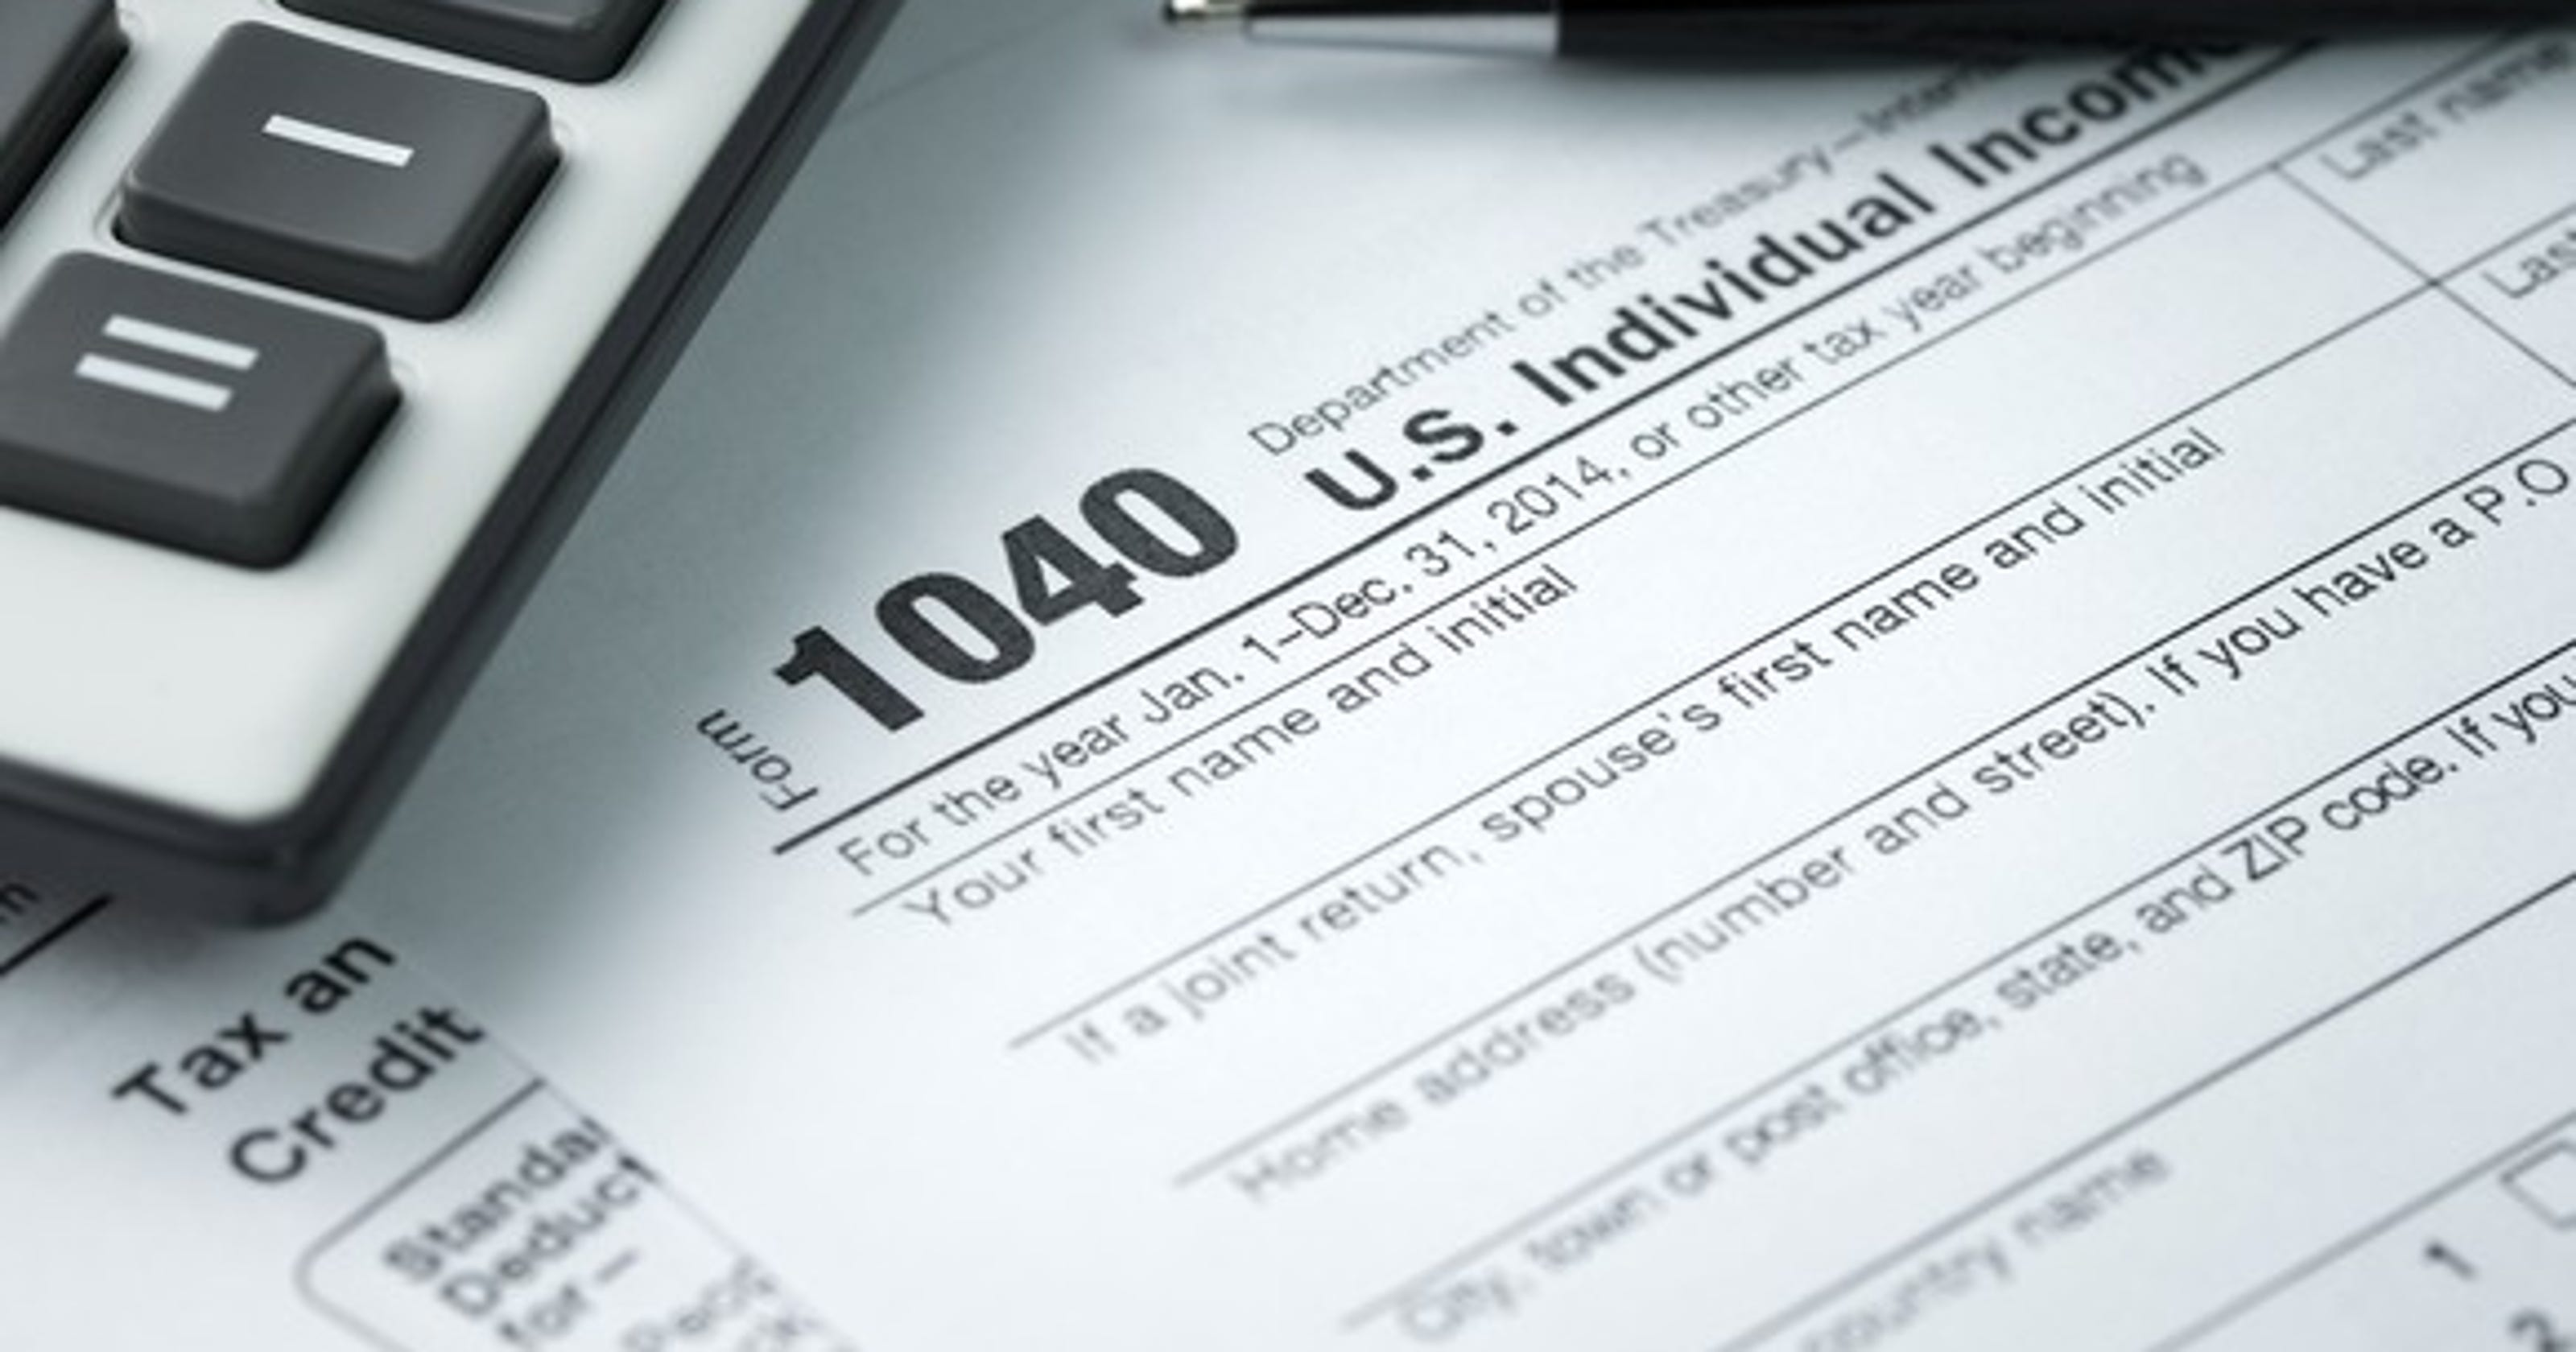 Taxes: New tax laws for 2019 filing